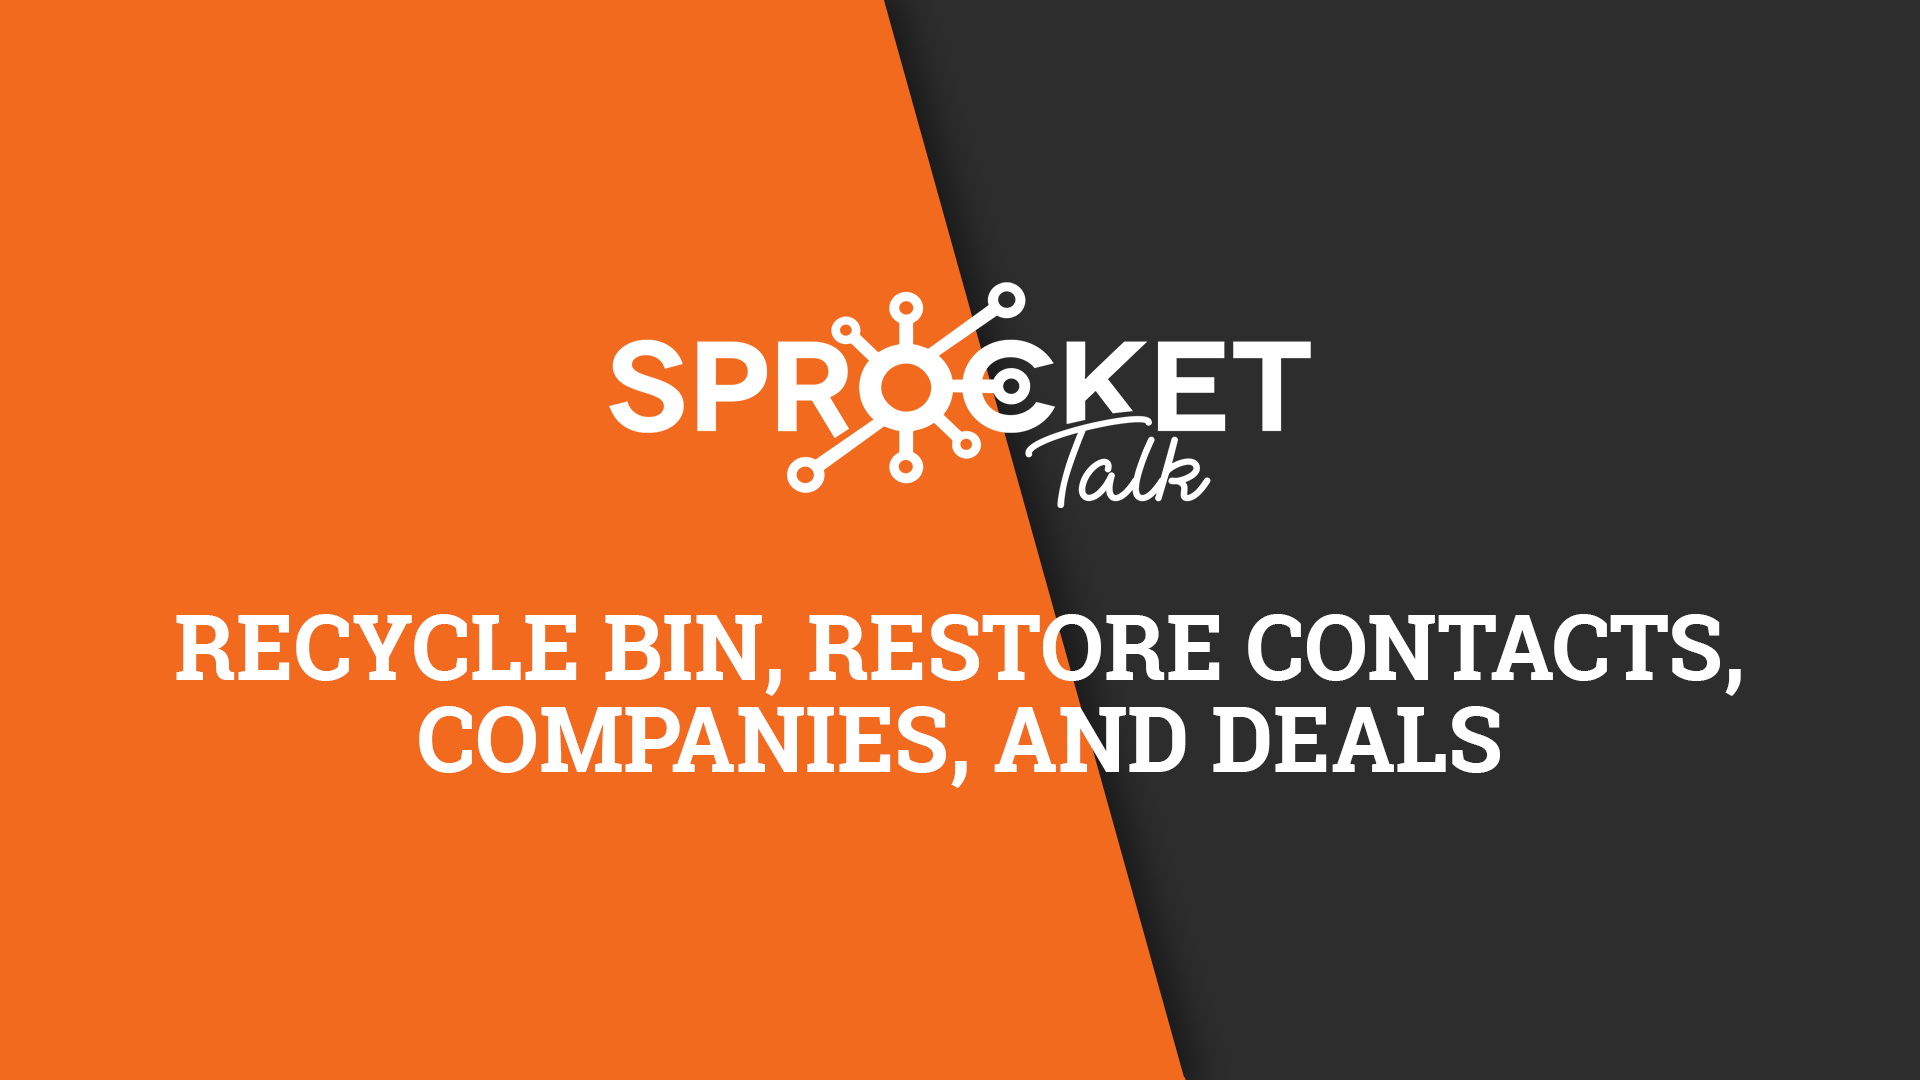 Recycle Bin, Restore Contacts, Companies, and Deals